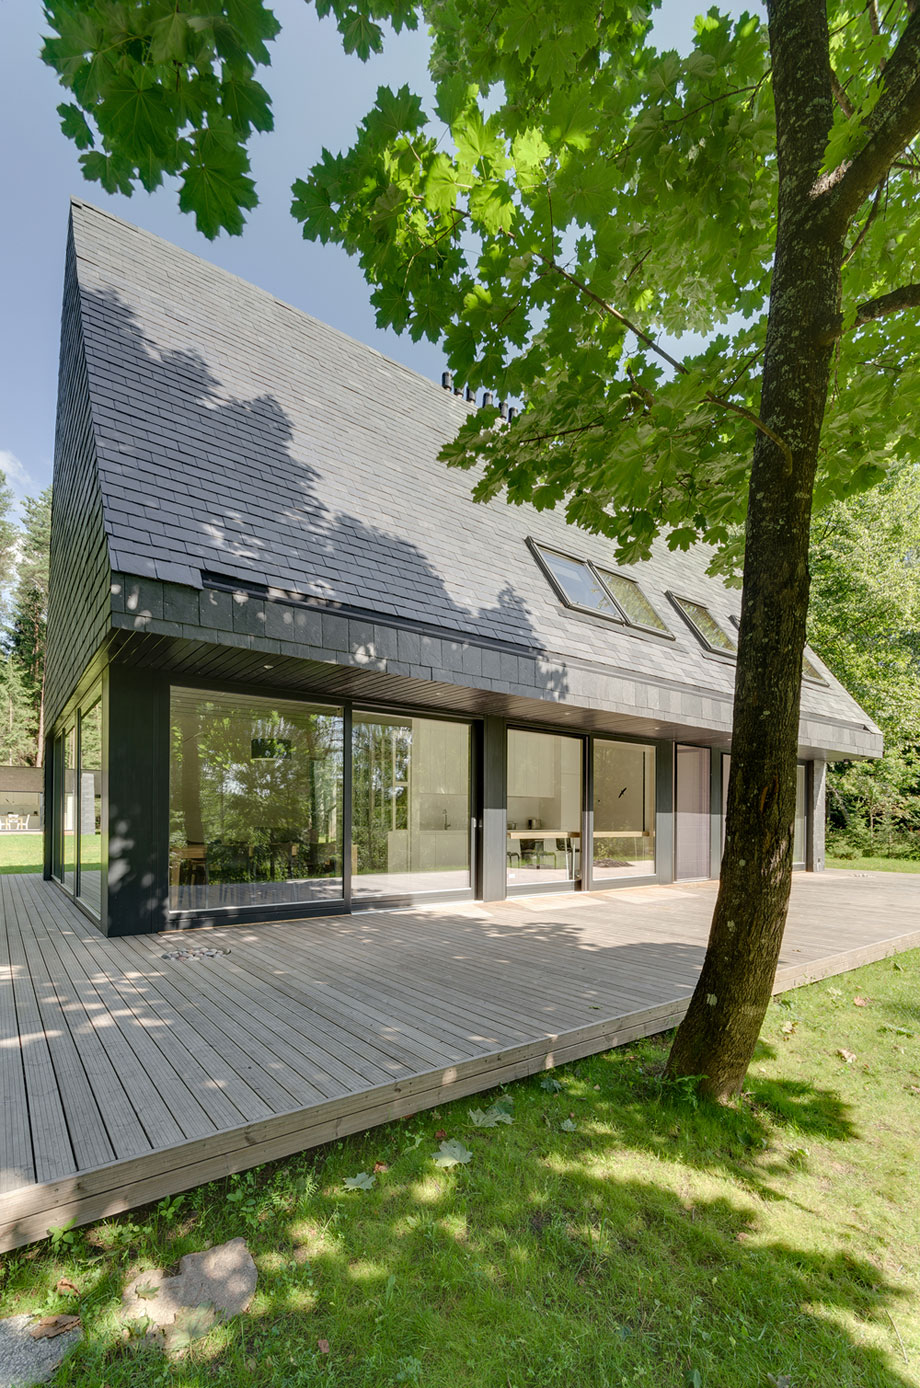 This House With Bluestone Walls Overlooks The Landscape: Comfortable House In Trakai By AKETURI ARCHITEKTAI